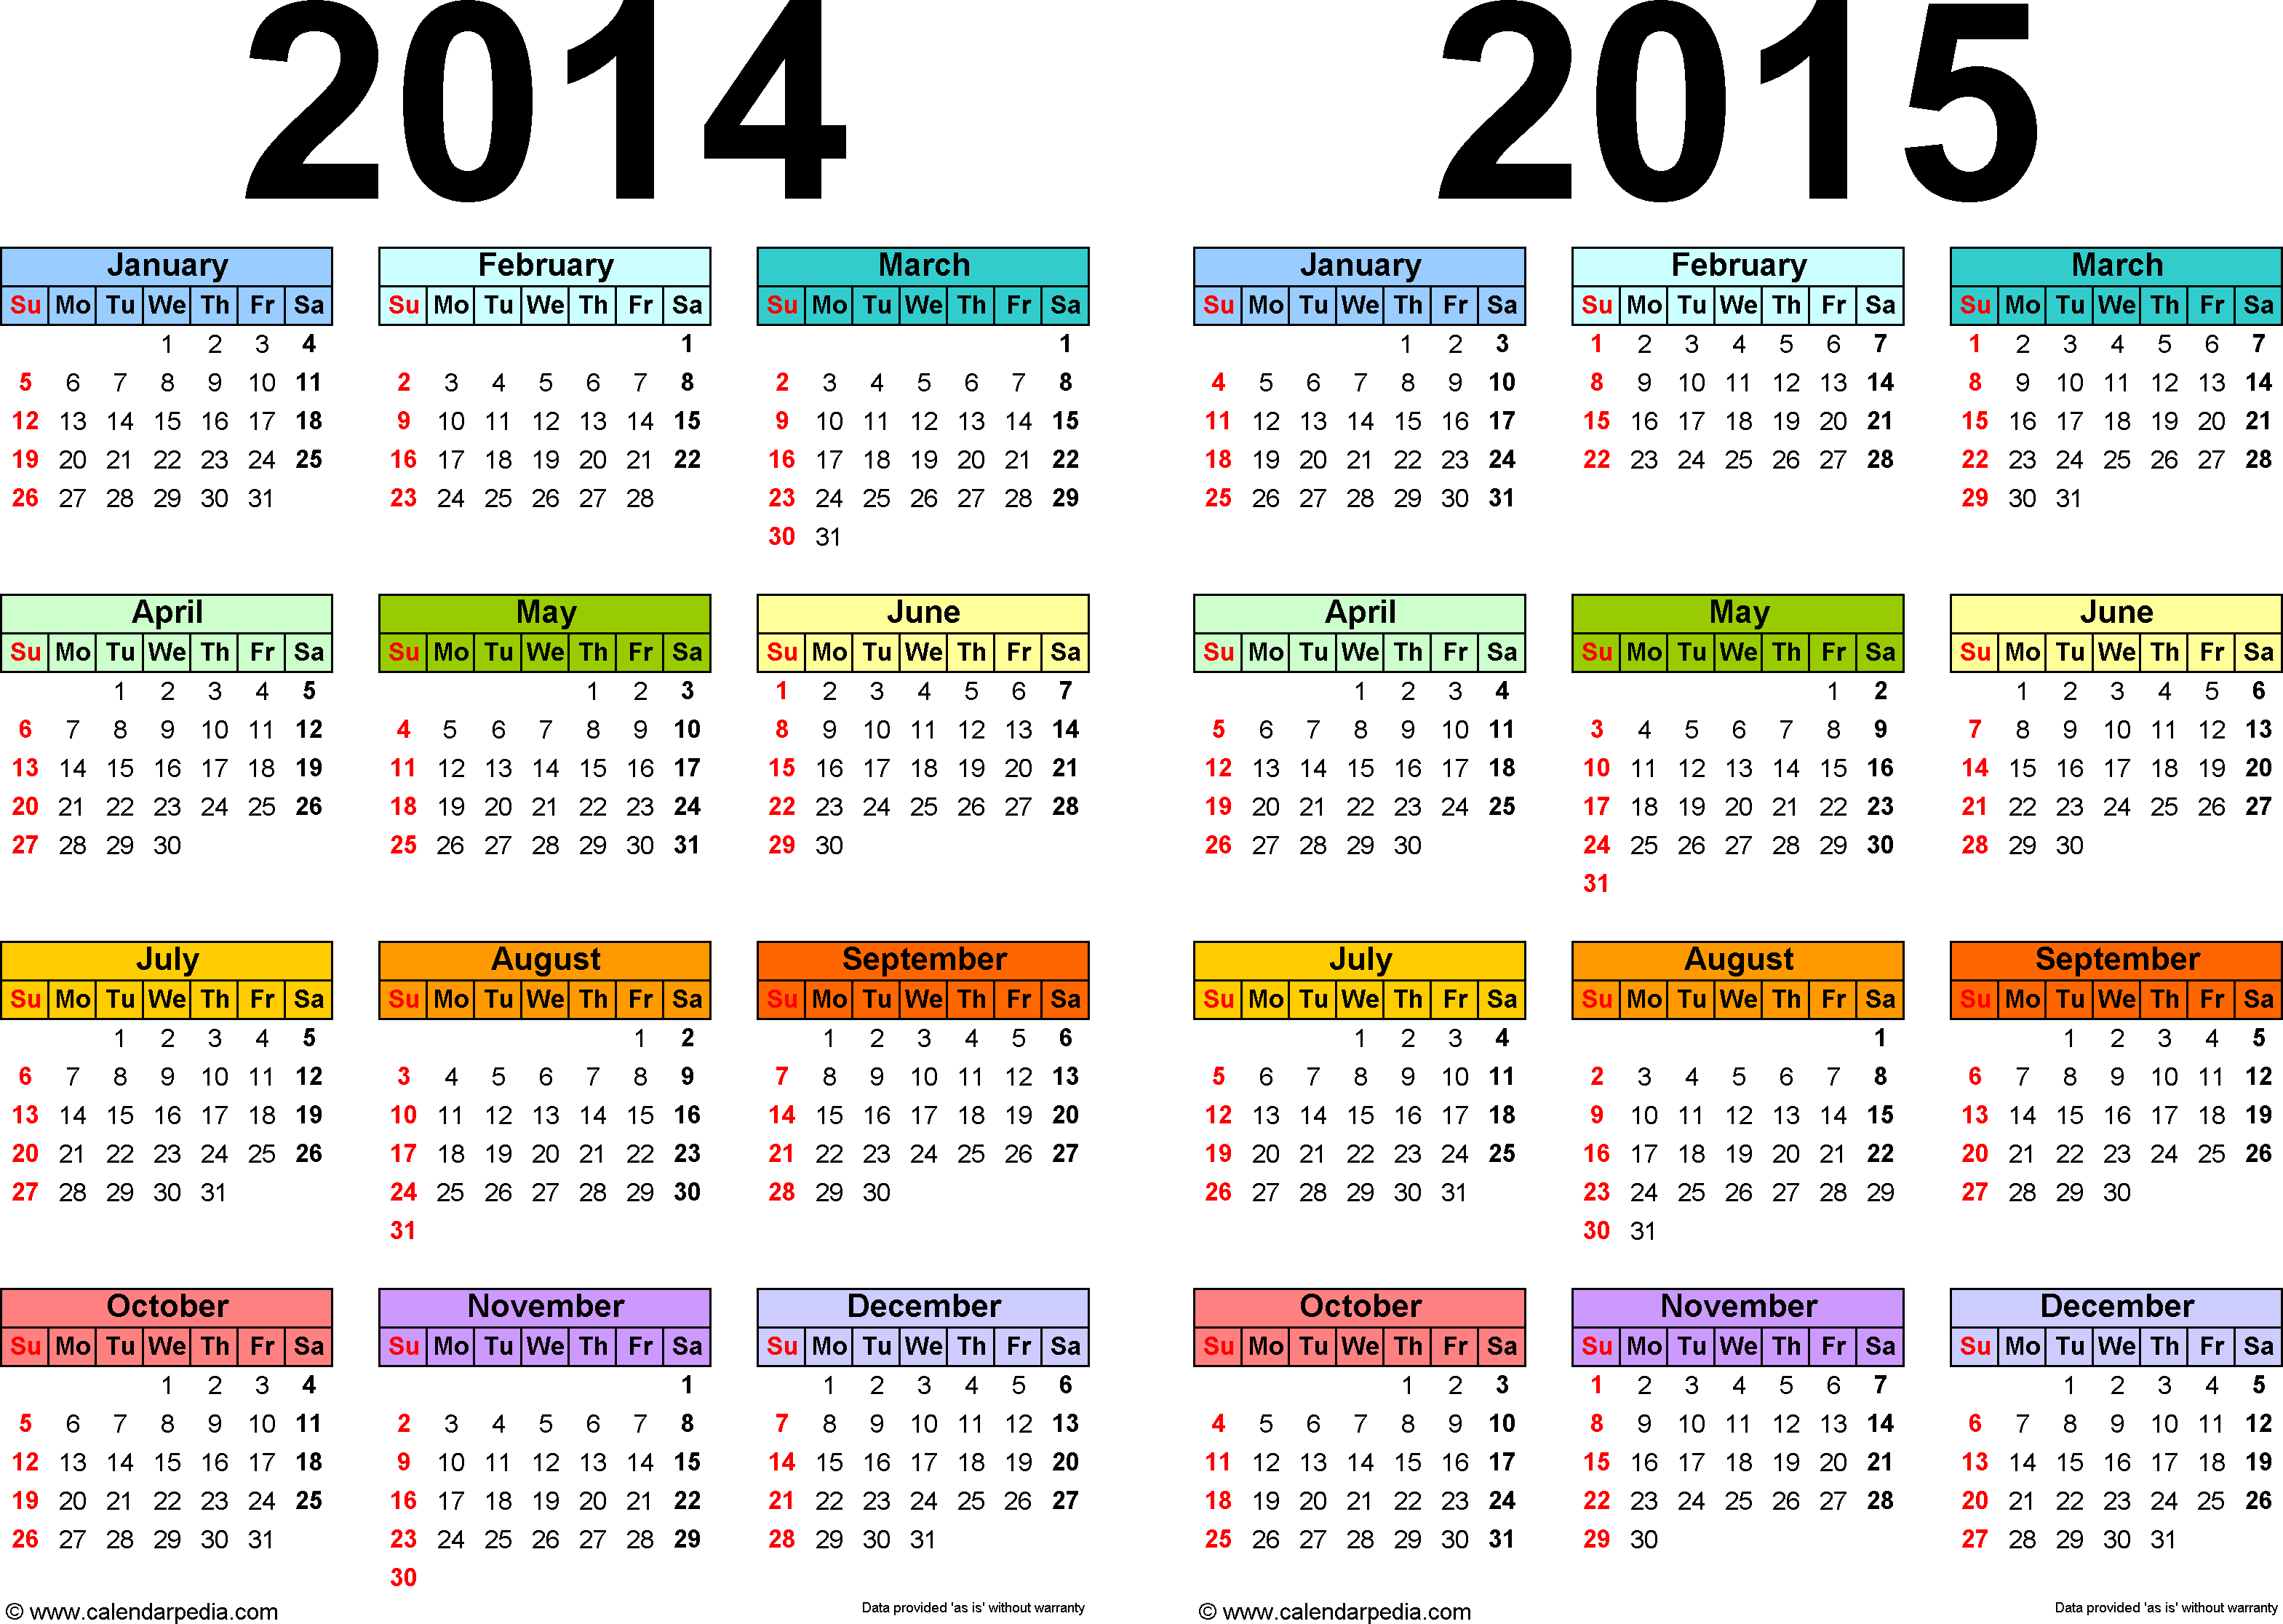 australian calendar template 2015 - 2014 2015 calendar free printable two year pdf calendars